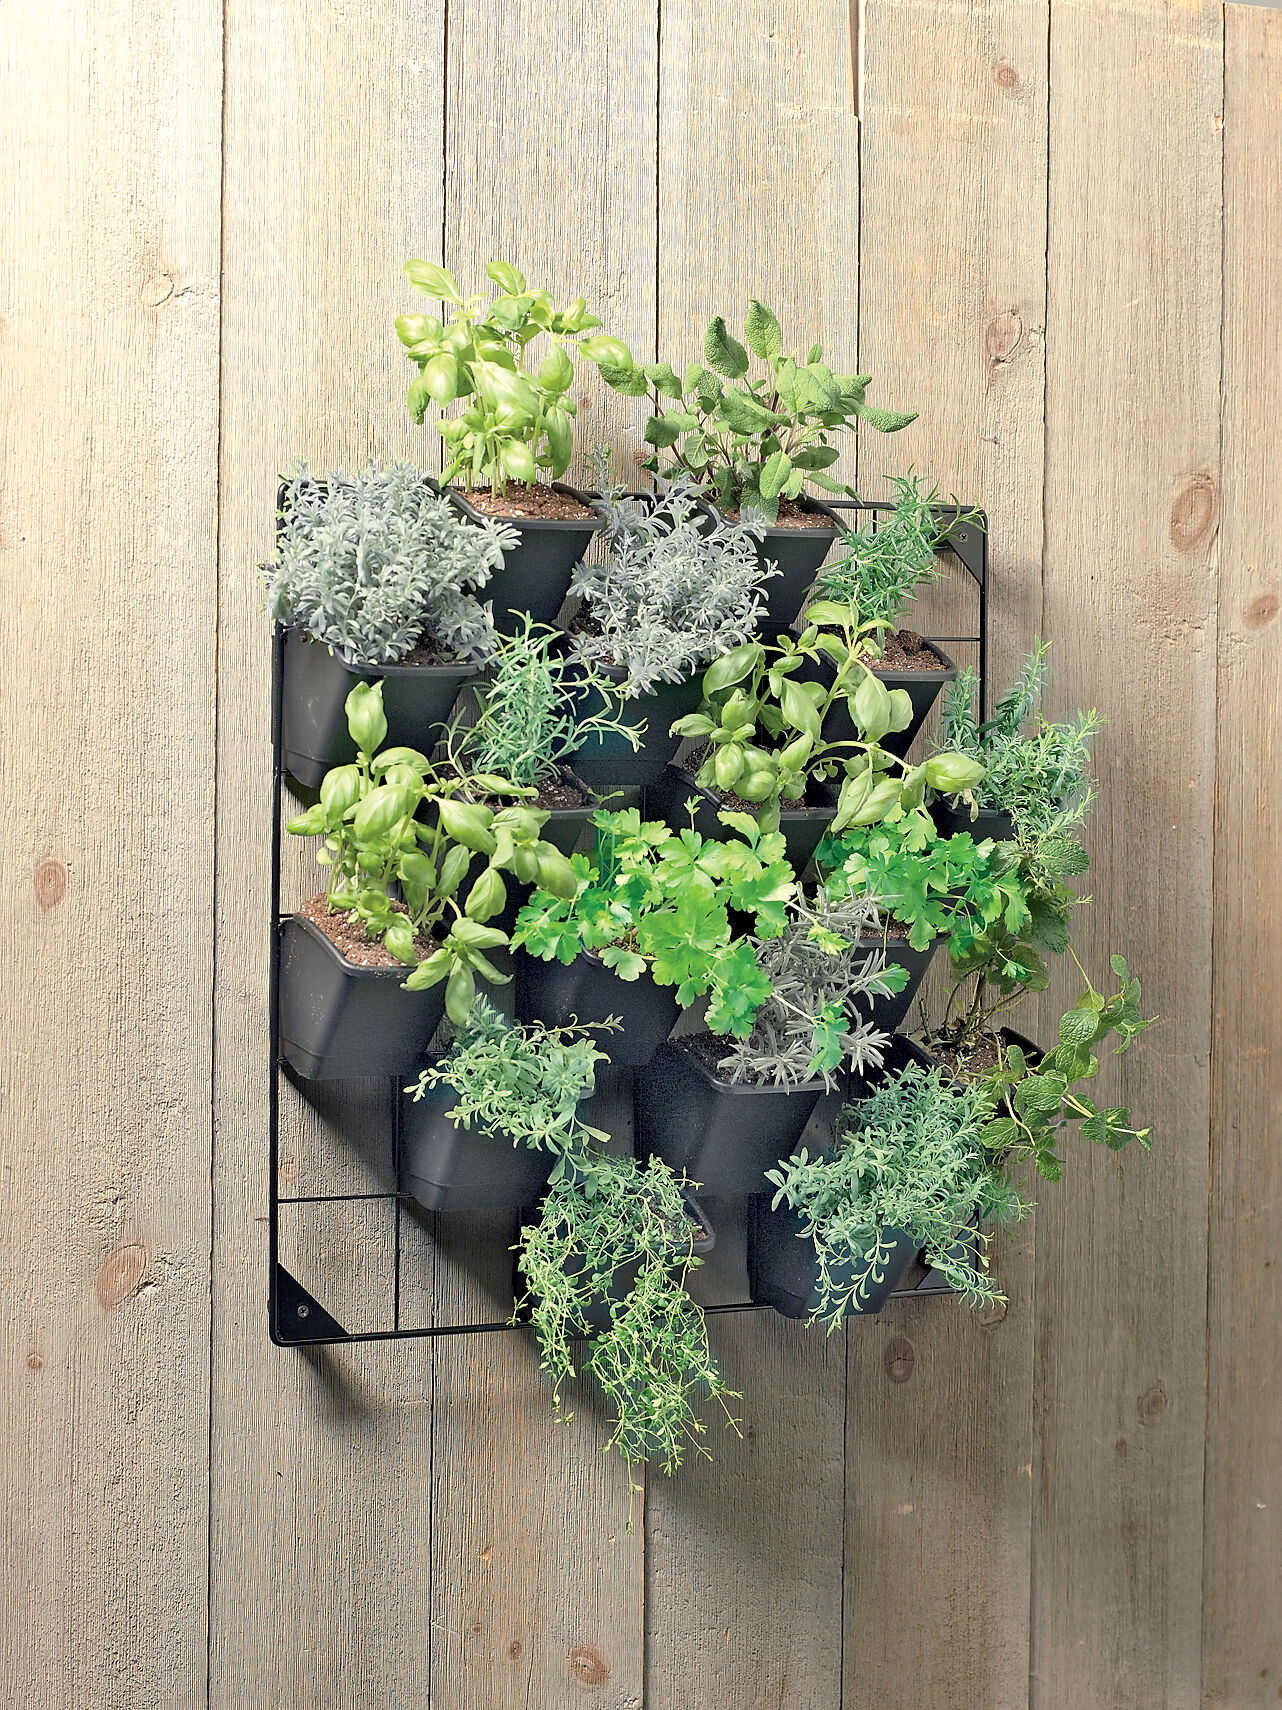 Hanging baskets for plants and flowers self watering for Wall plants outdoor